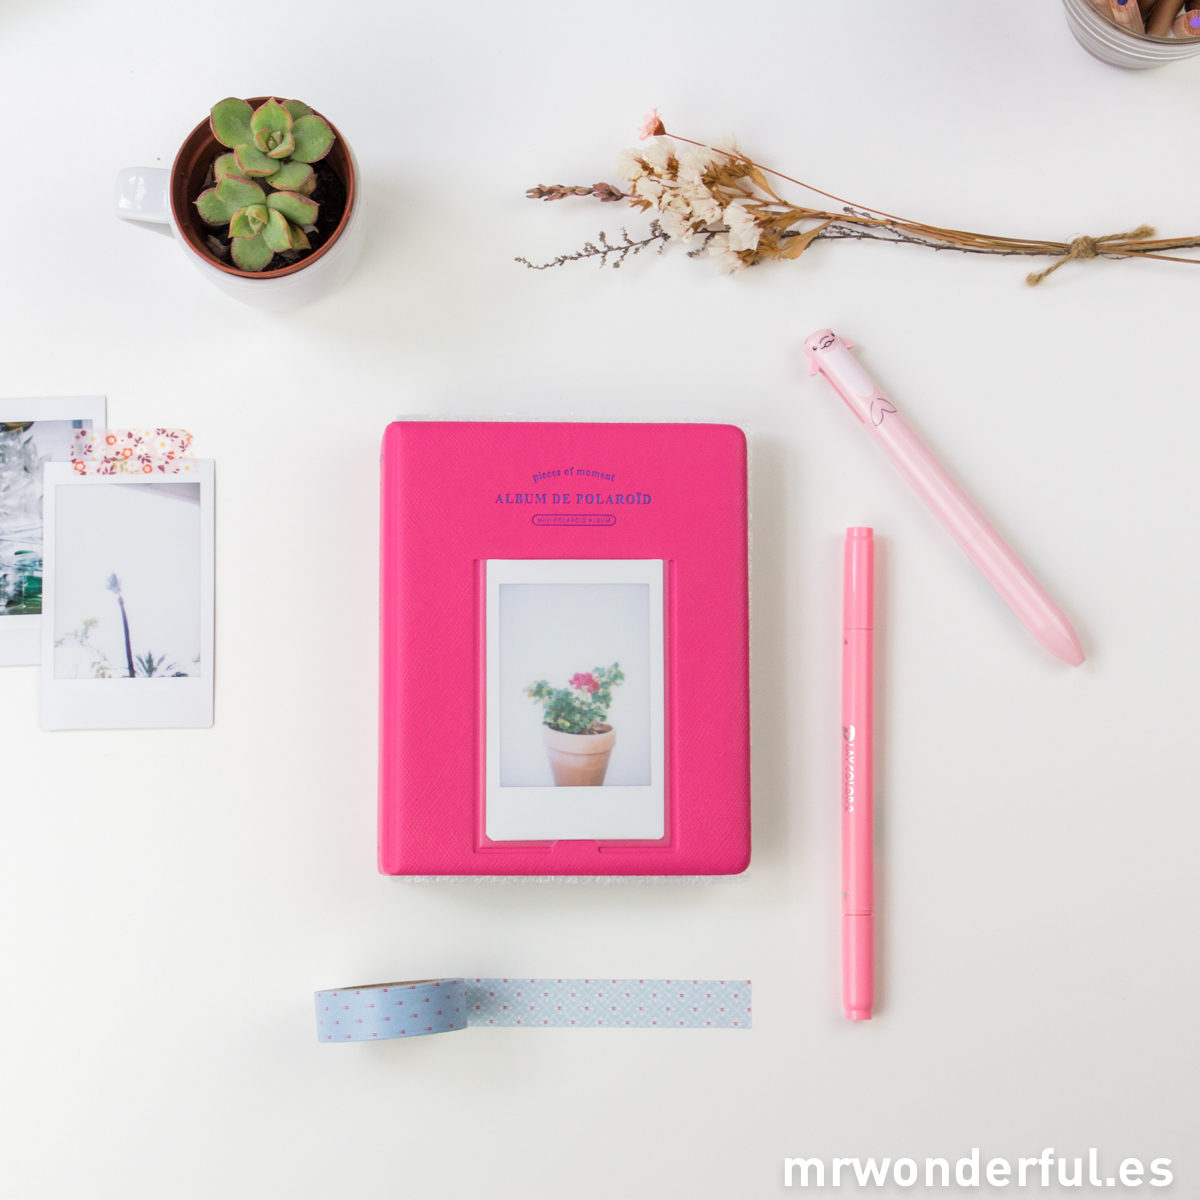 mrwonderful_7800_ROSEPINK_album-fotos-polaroid-mini-fucsia-3